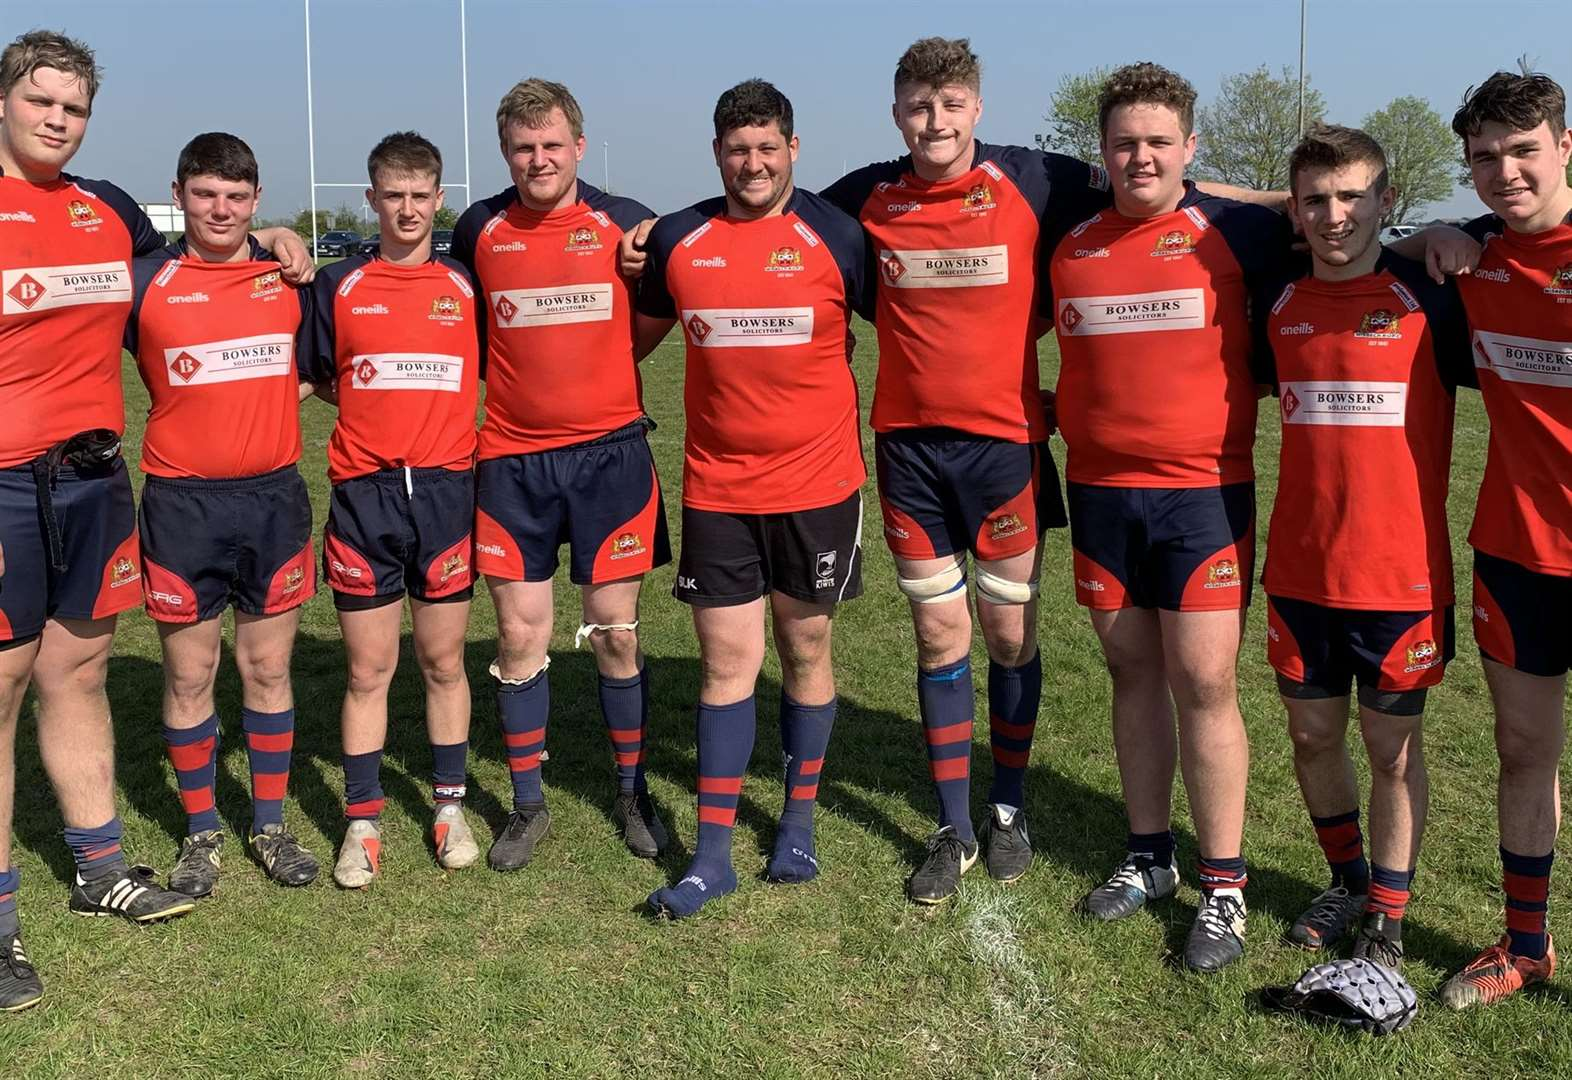 Rugby: Wisbech beat March Bears to reclaim Jack Arch Memorial Cup in front of large Easter bank holiday crowd